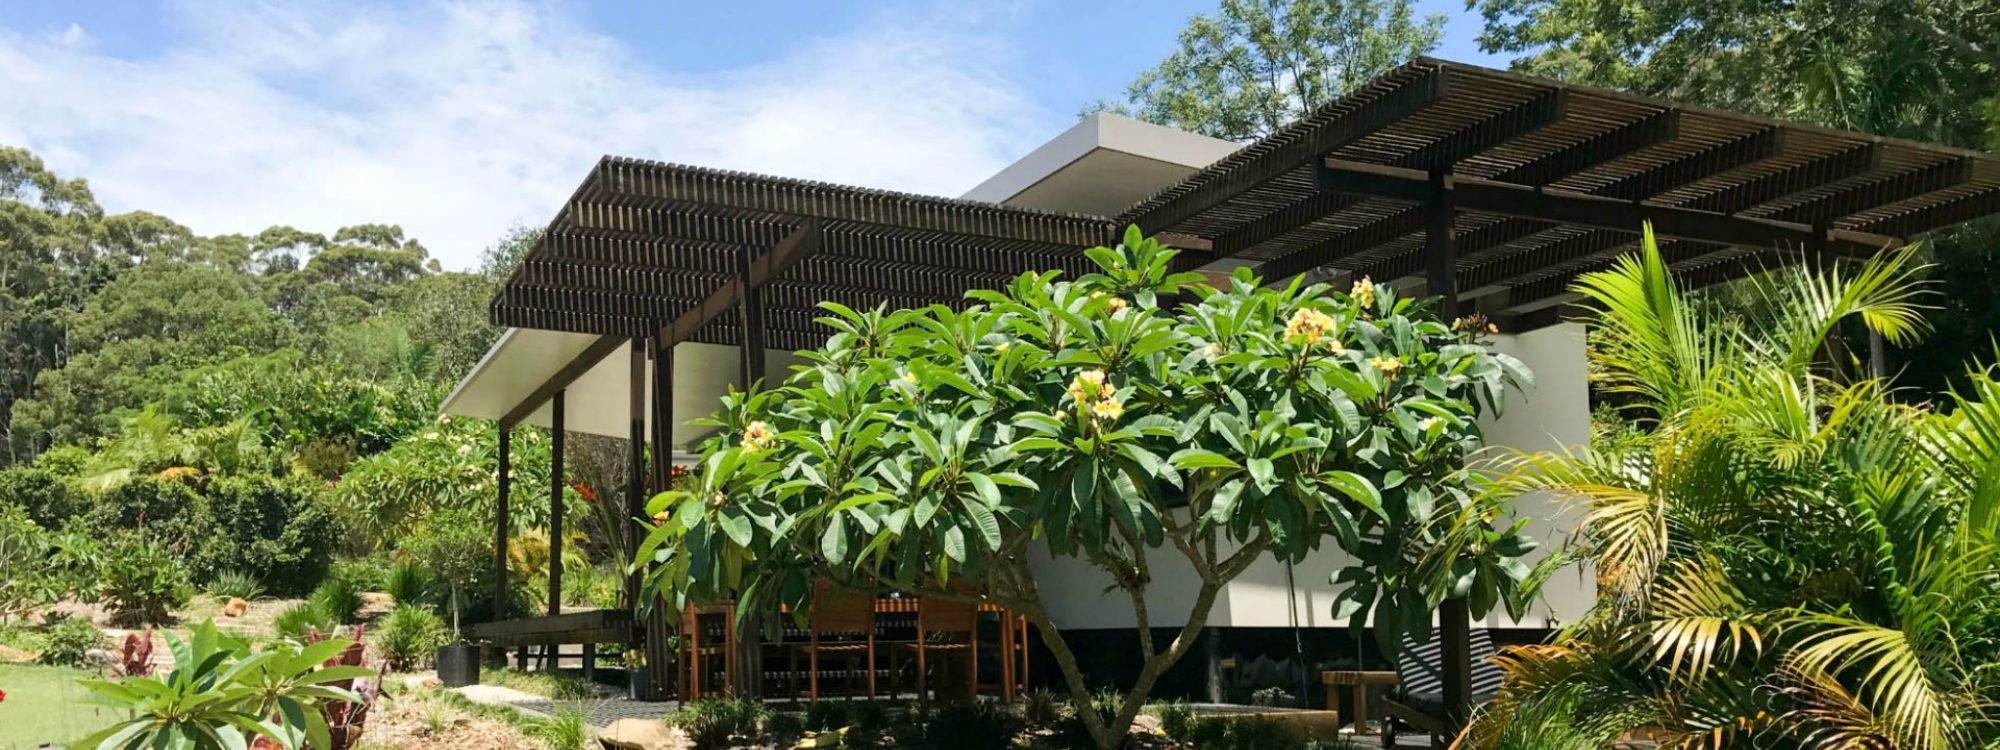 Outdoor dining, deck & BBQ area is shaded in summer by the magnificent frangipani tree.